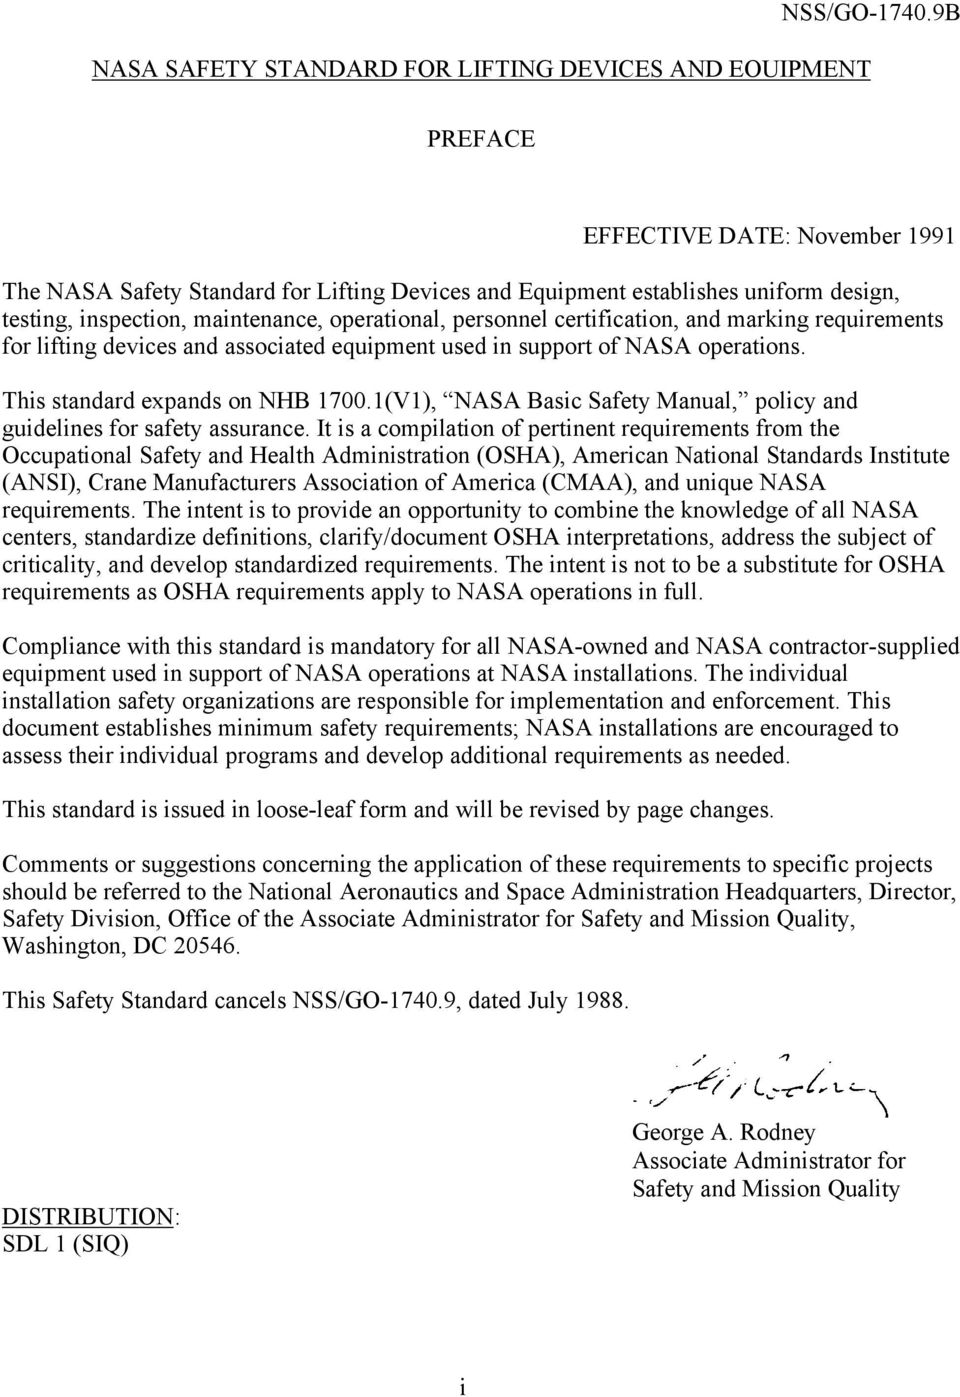 and marking requirements for lifting devices and associated equipment used in support of NASA operations. This standard expands on NHB 1700.